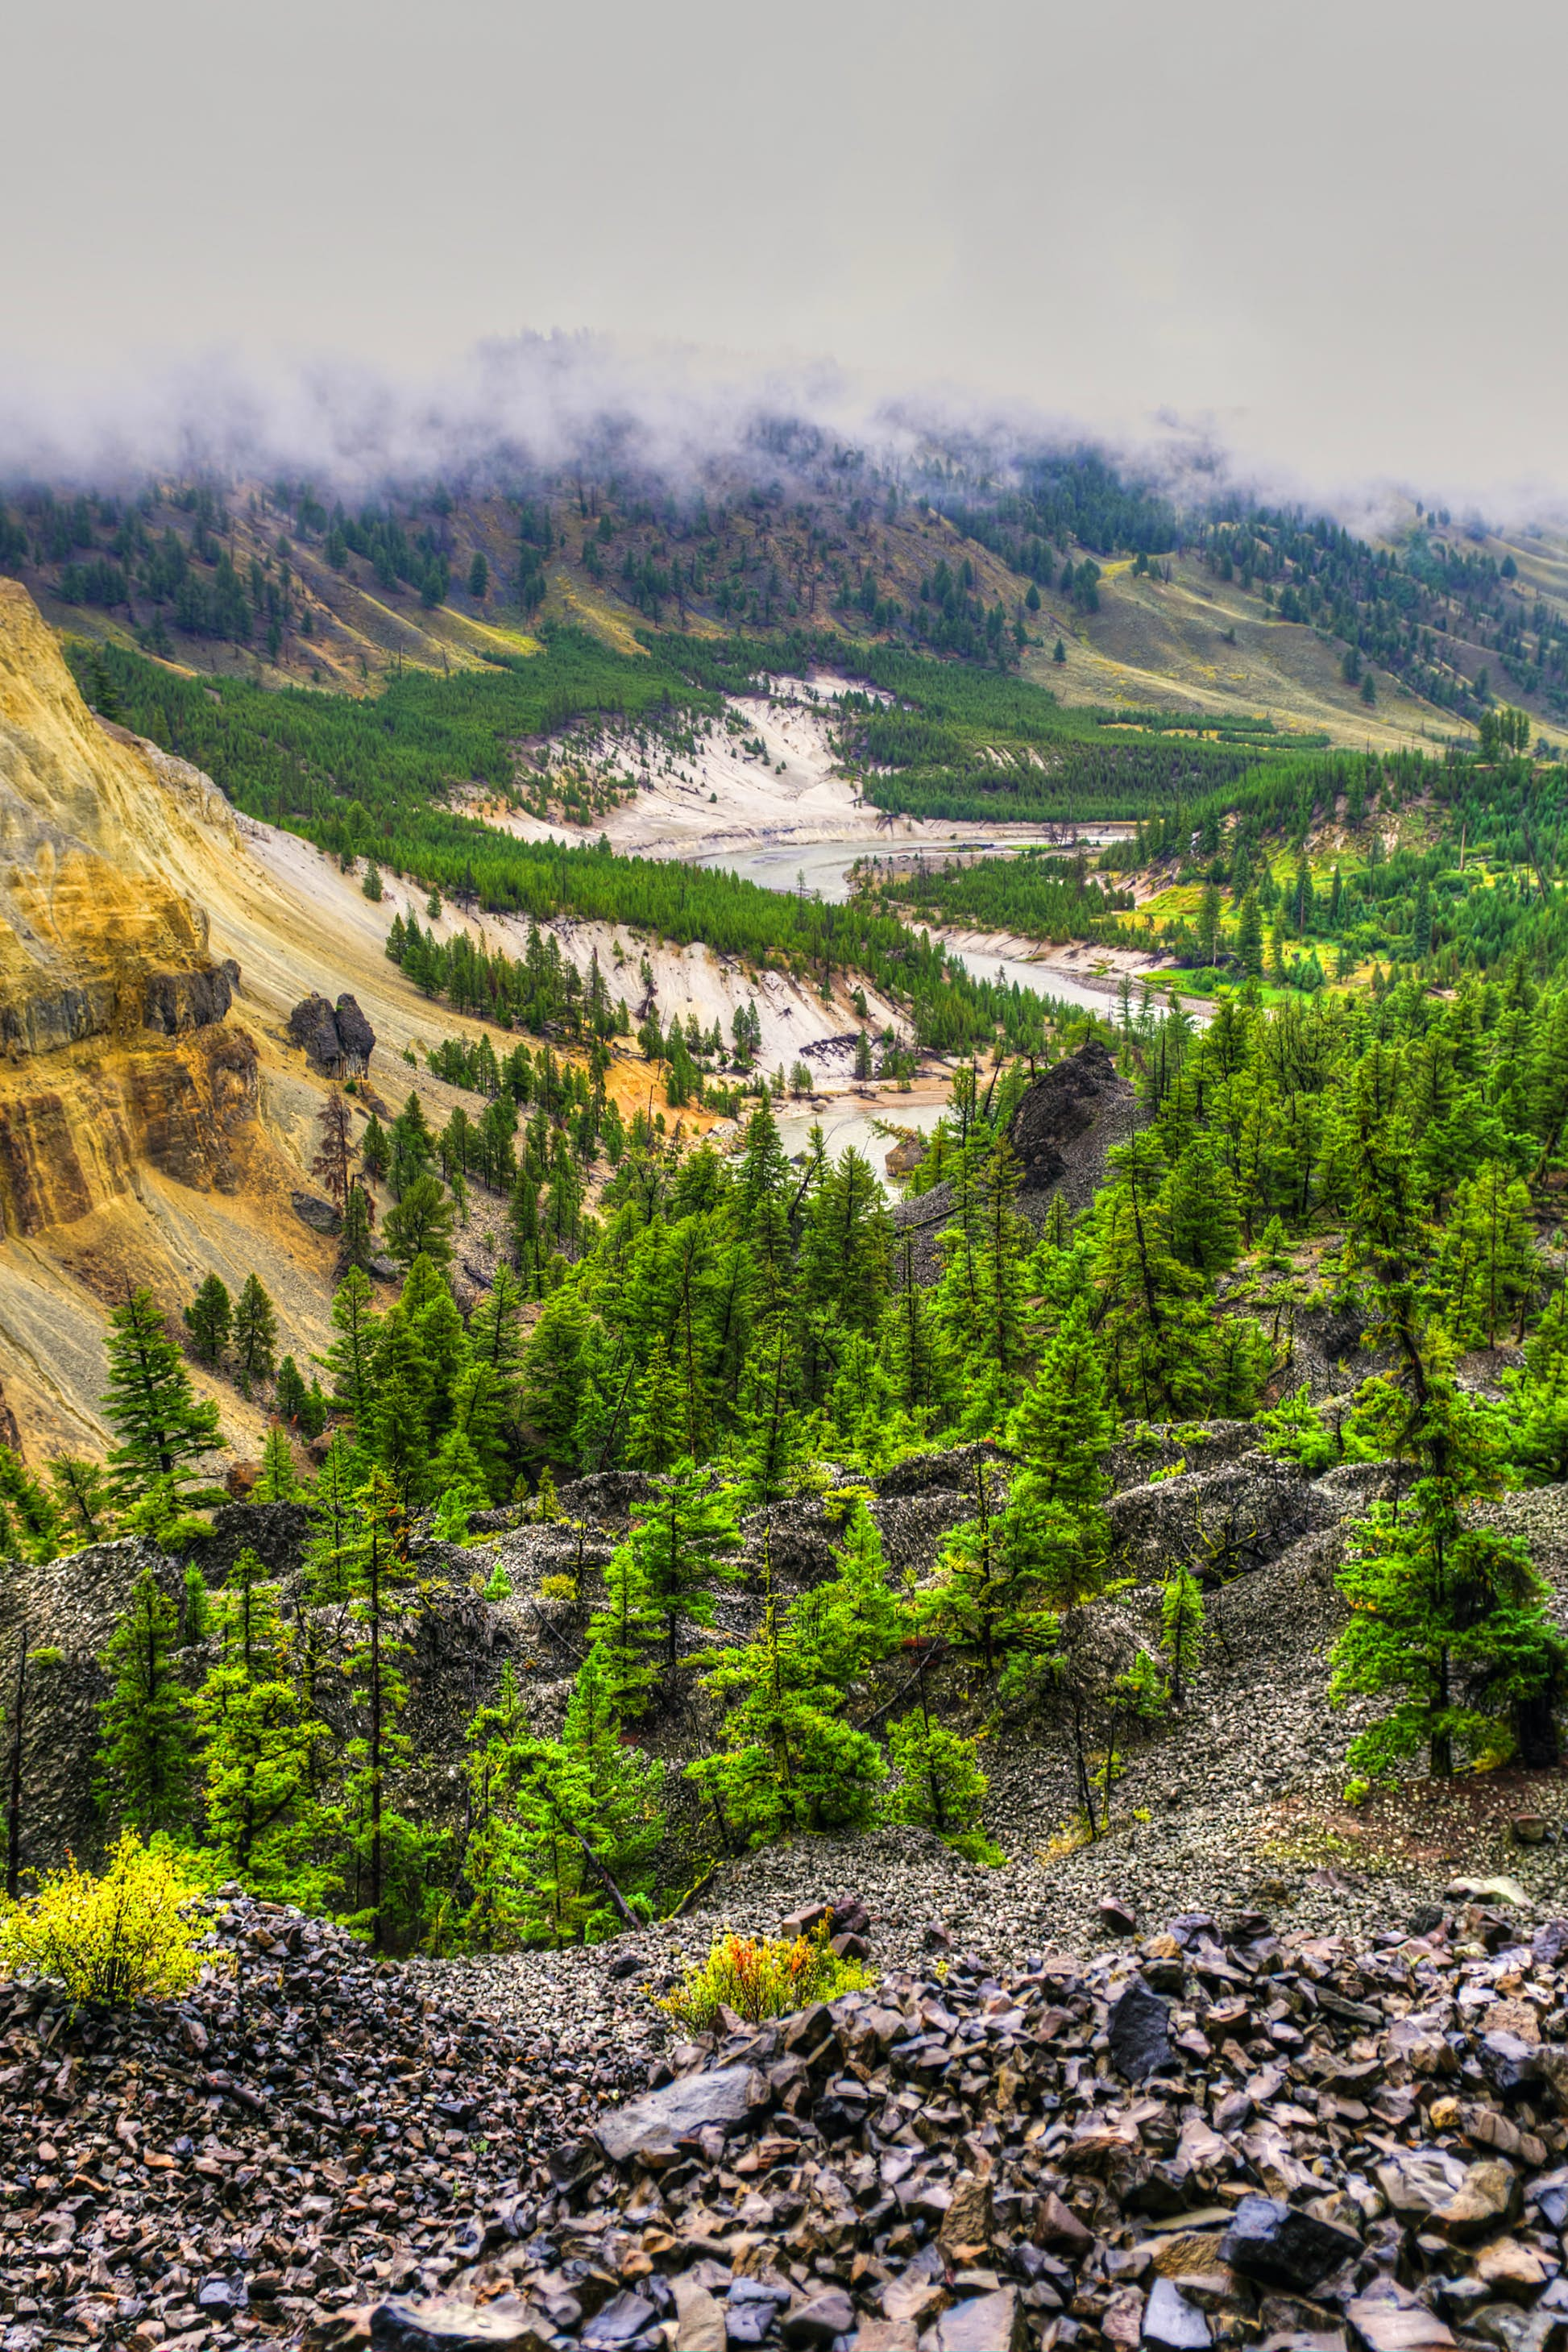 Cloud-covered mountains and forest at Yellowstone National Park © BGSmith / Shutterstock